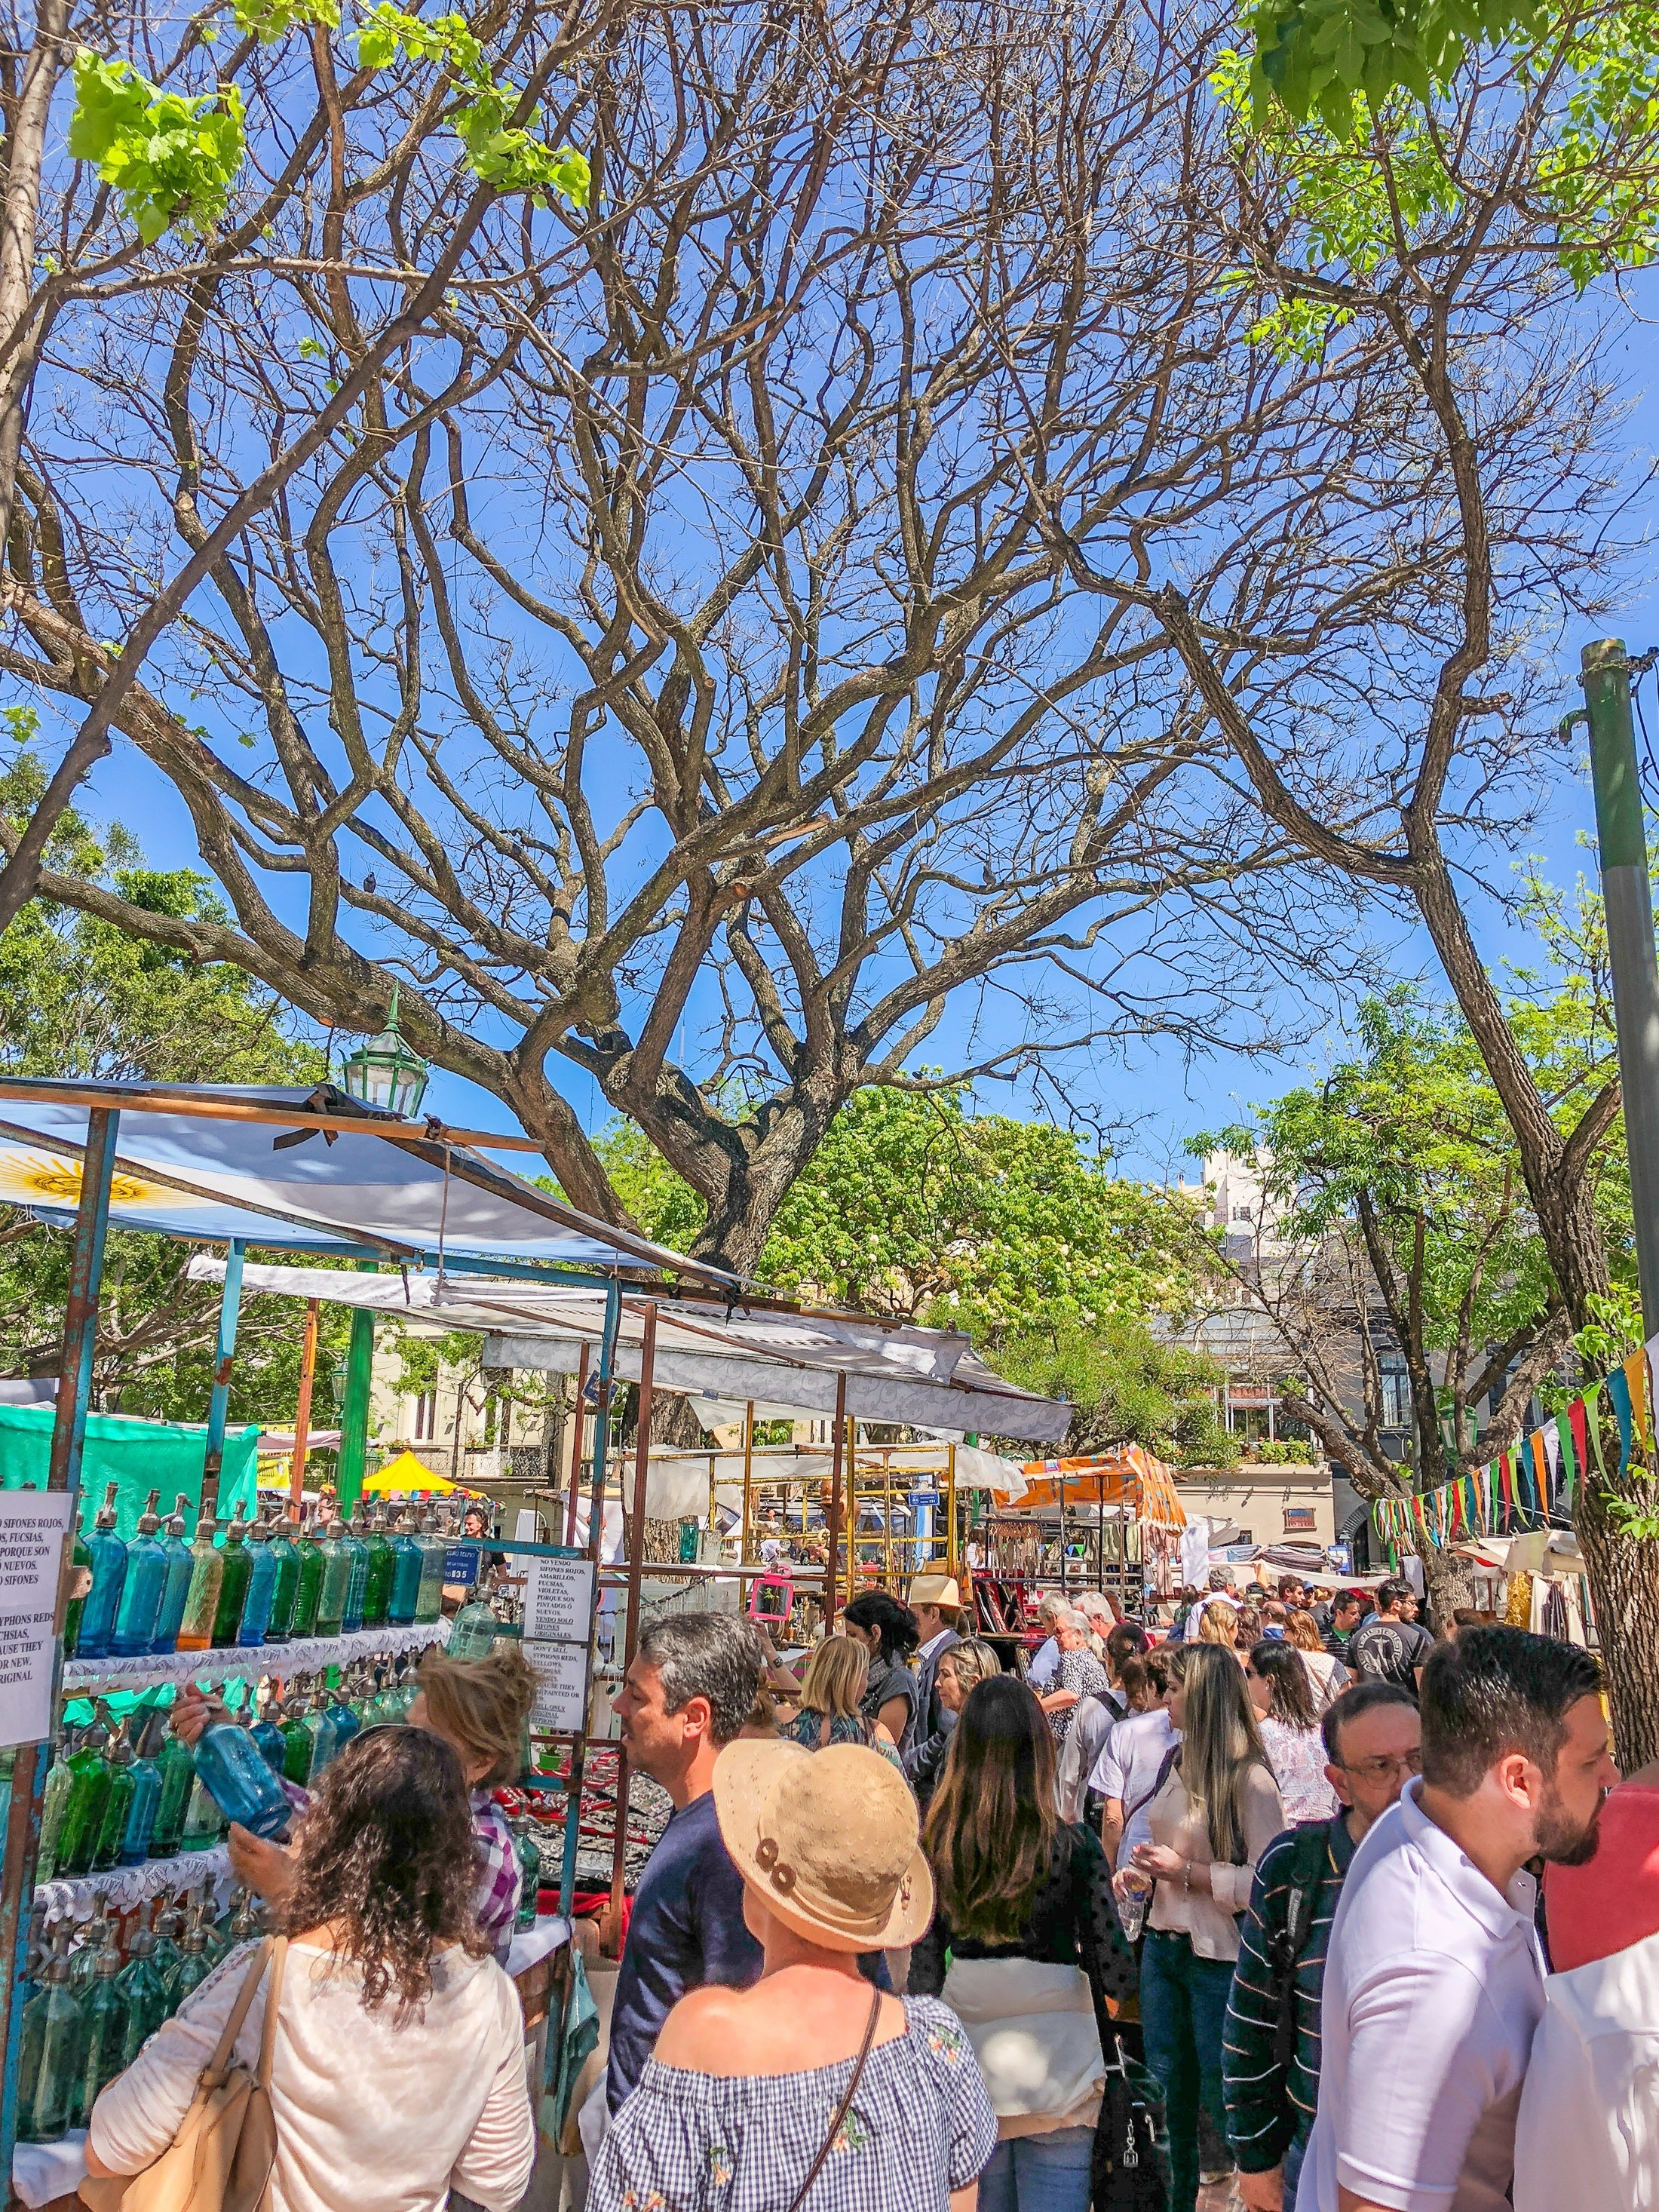 One of the best things to do in Buenos Aires is visit the San Telmo Fair on Sundays.